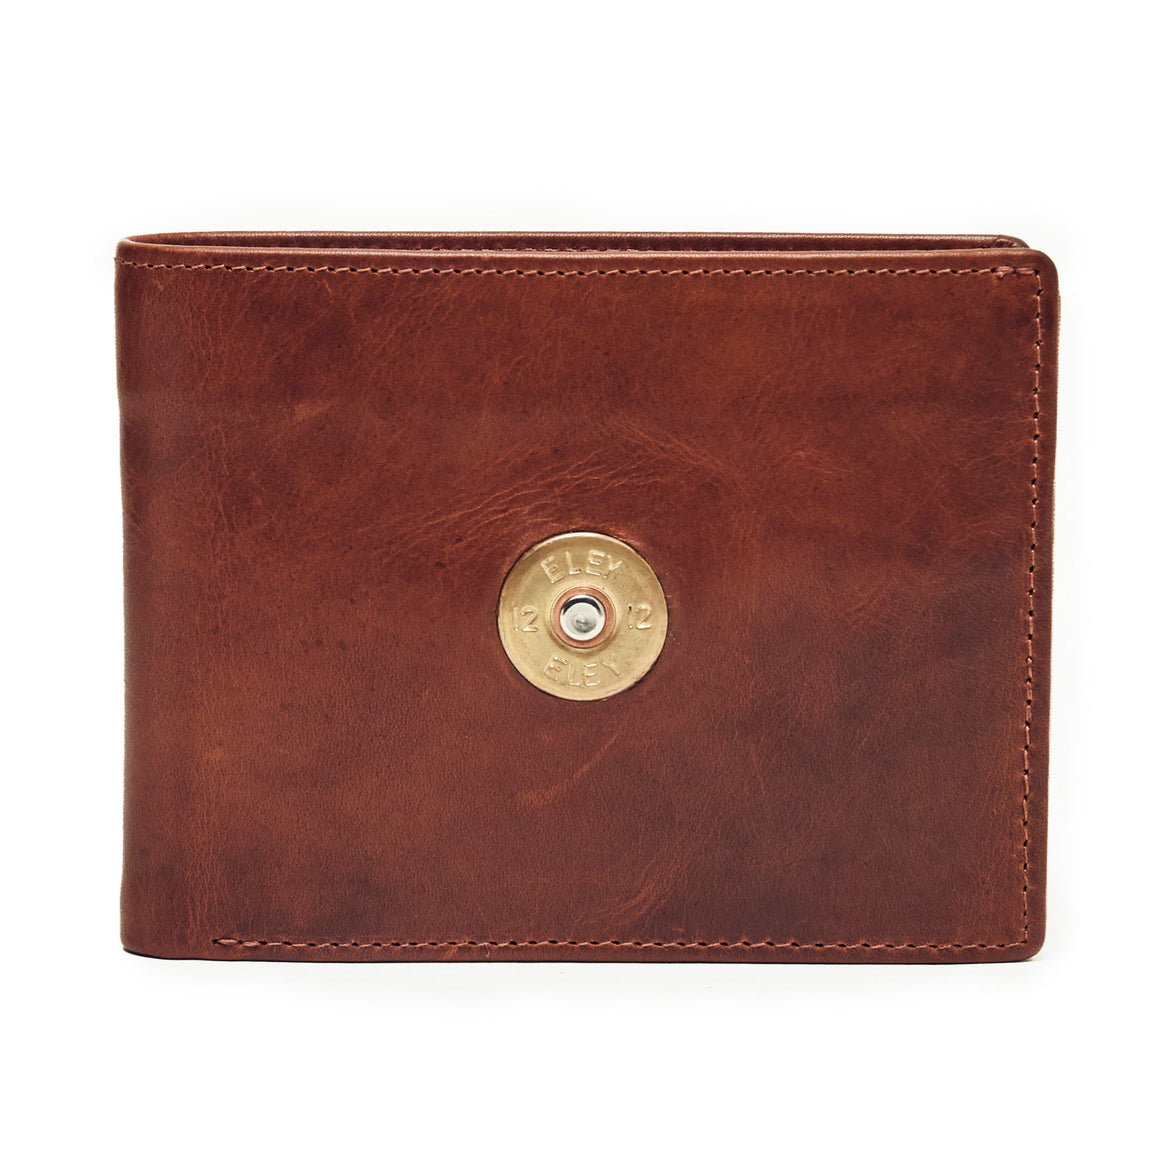 Hicks & Hide 12bore Wallet Cognac Leather - RedMillsStore.ie